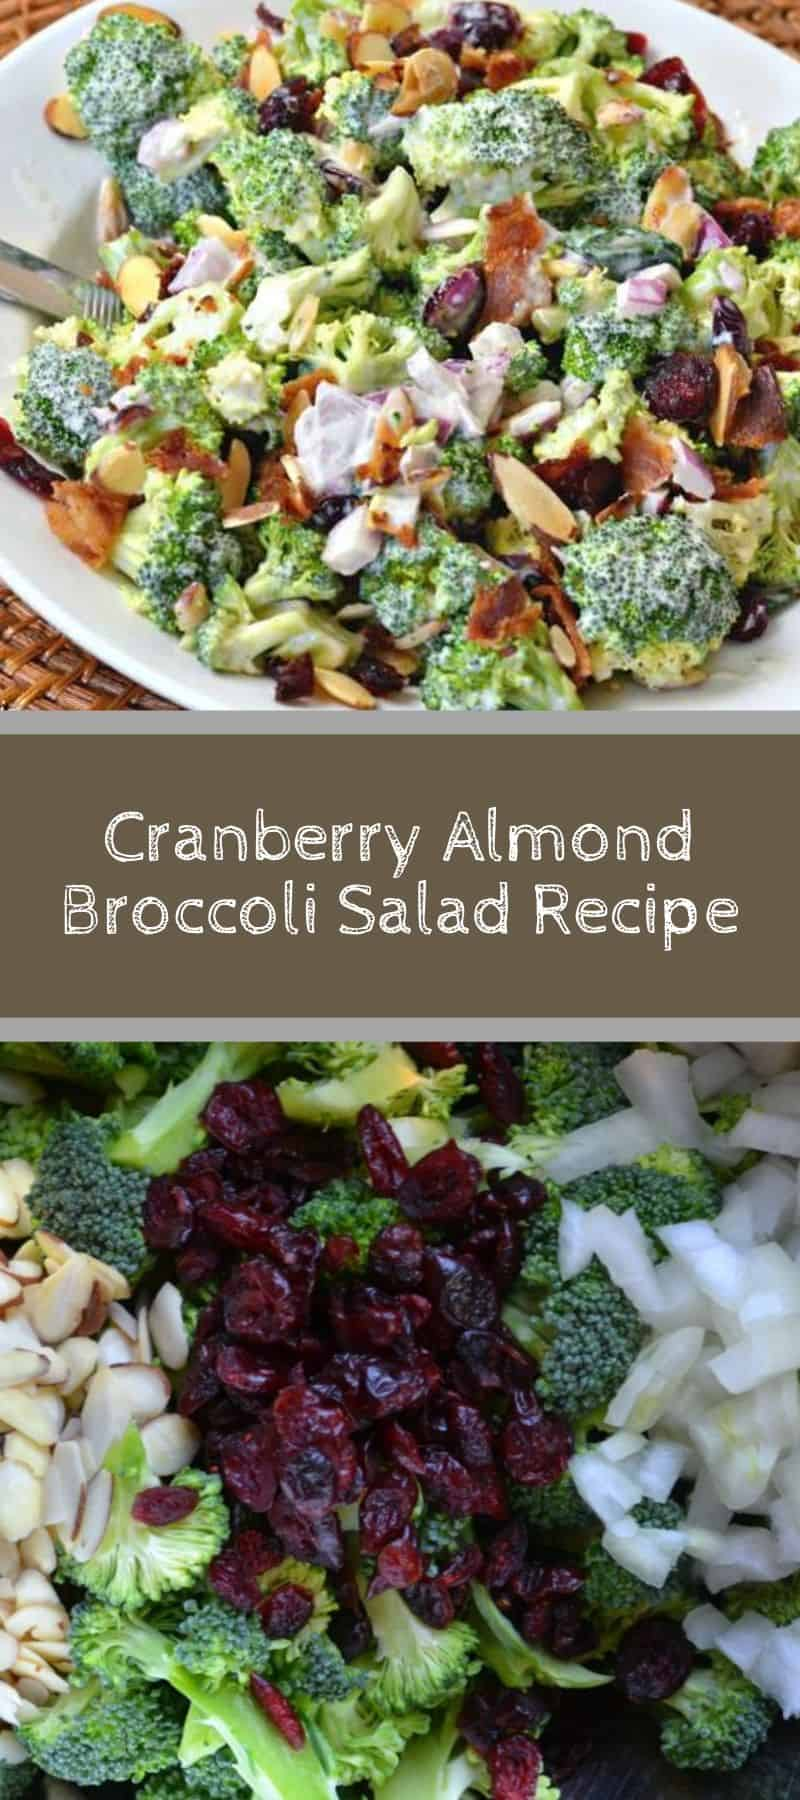 Cranberry Almond Broccoli Salad Recipe 3